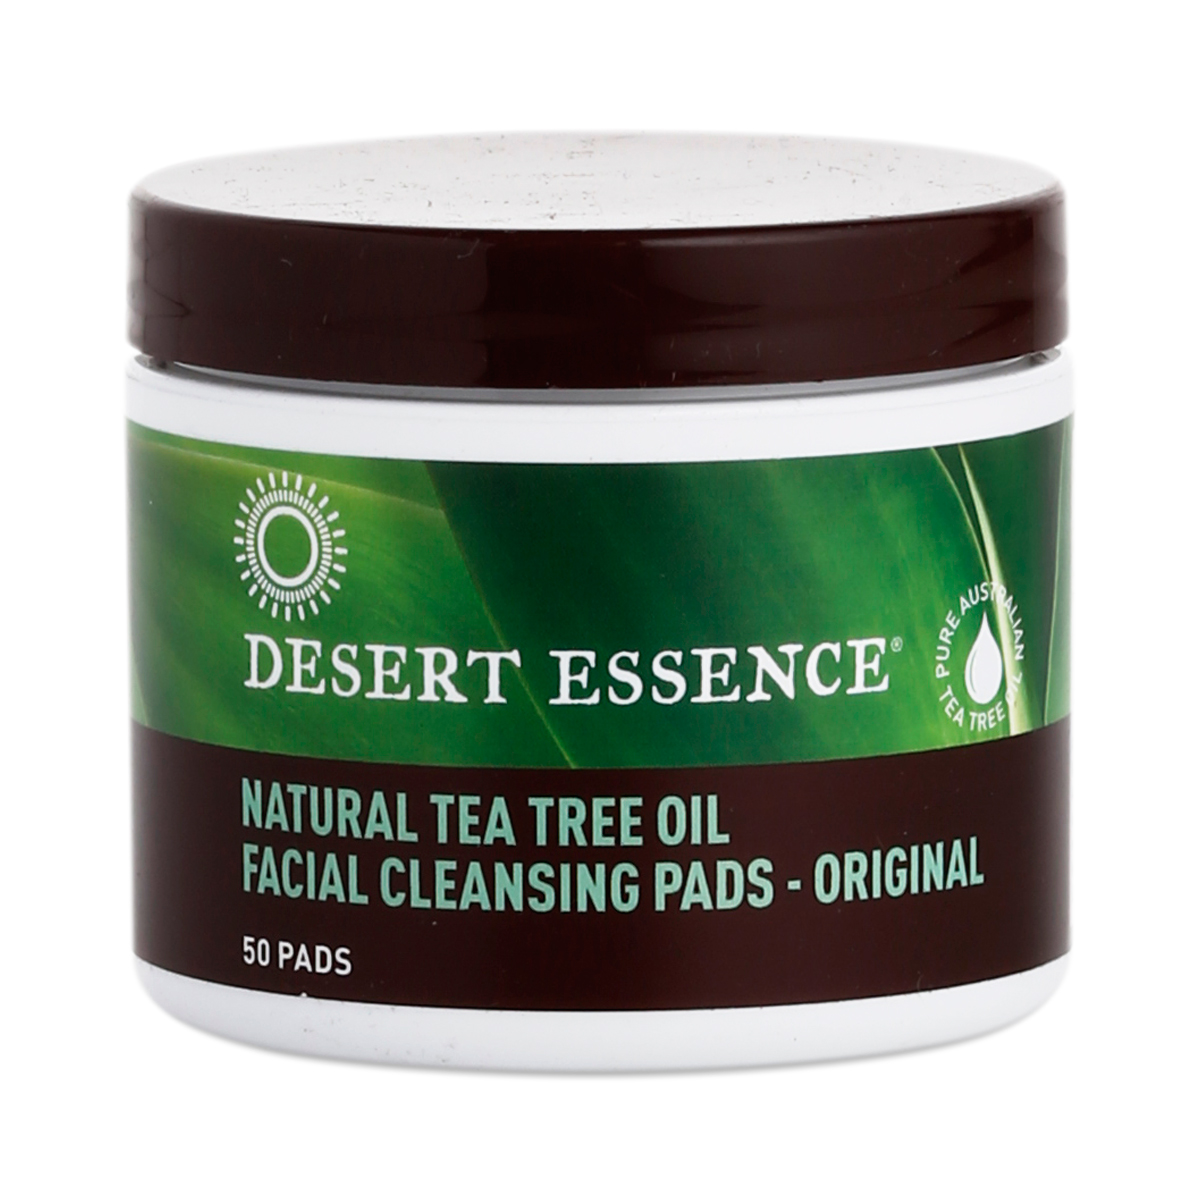 Desert essence cleansing pads